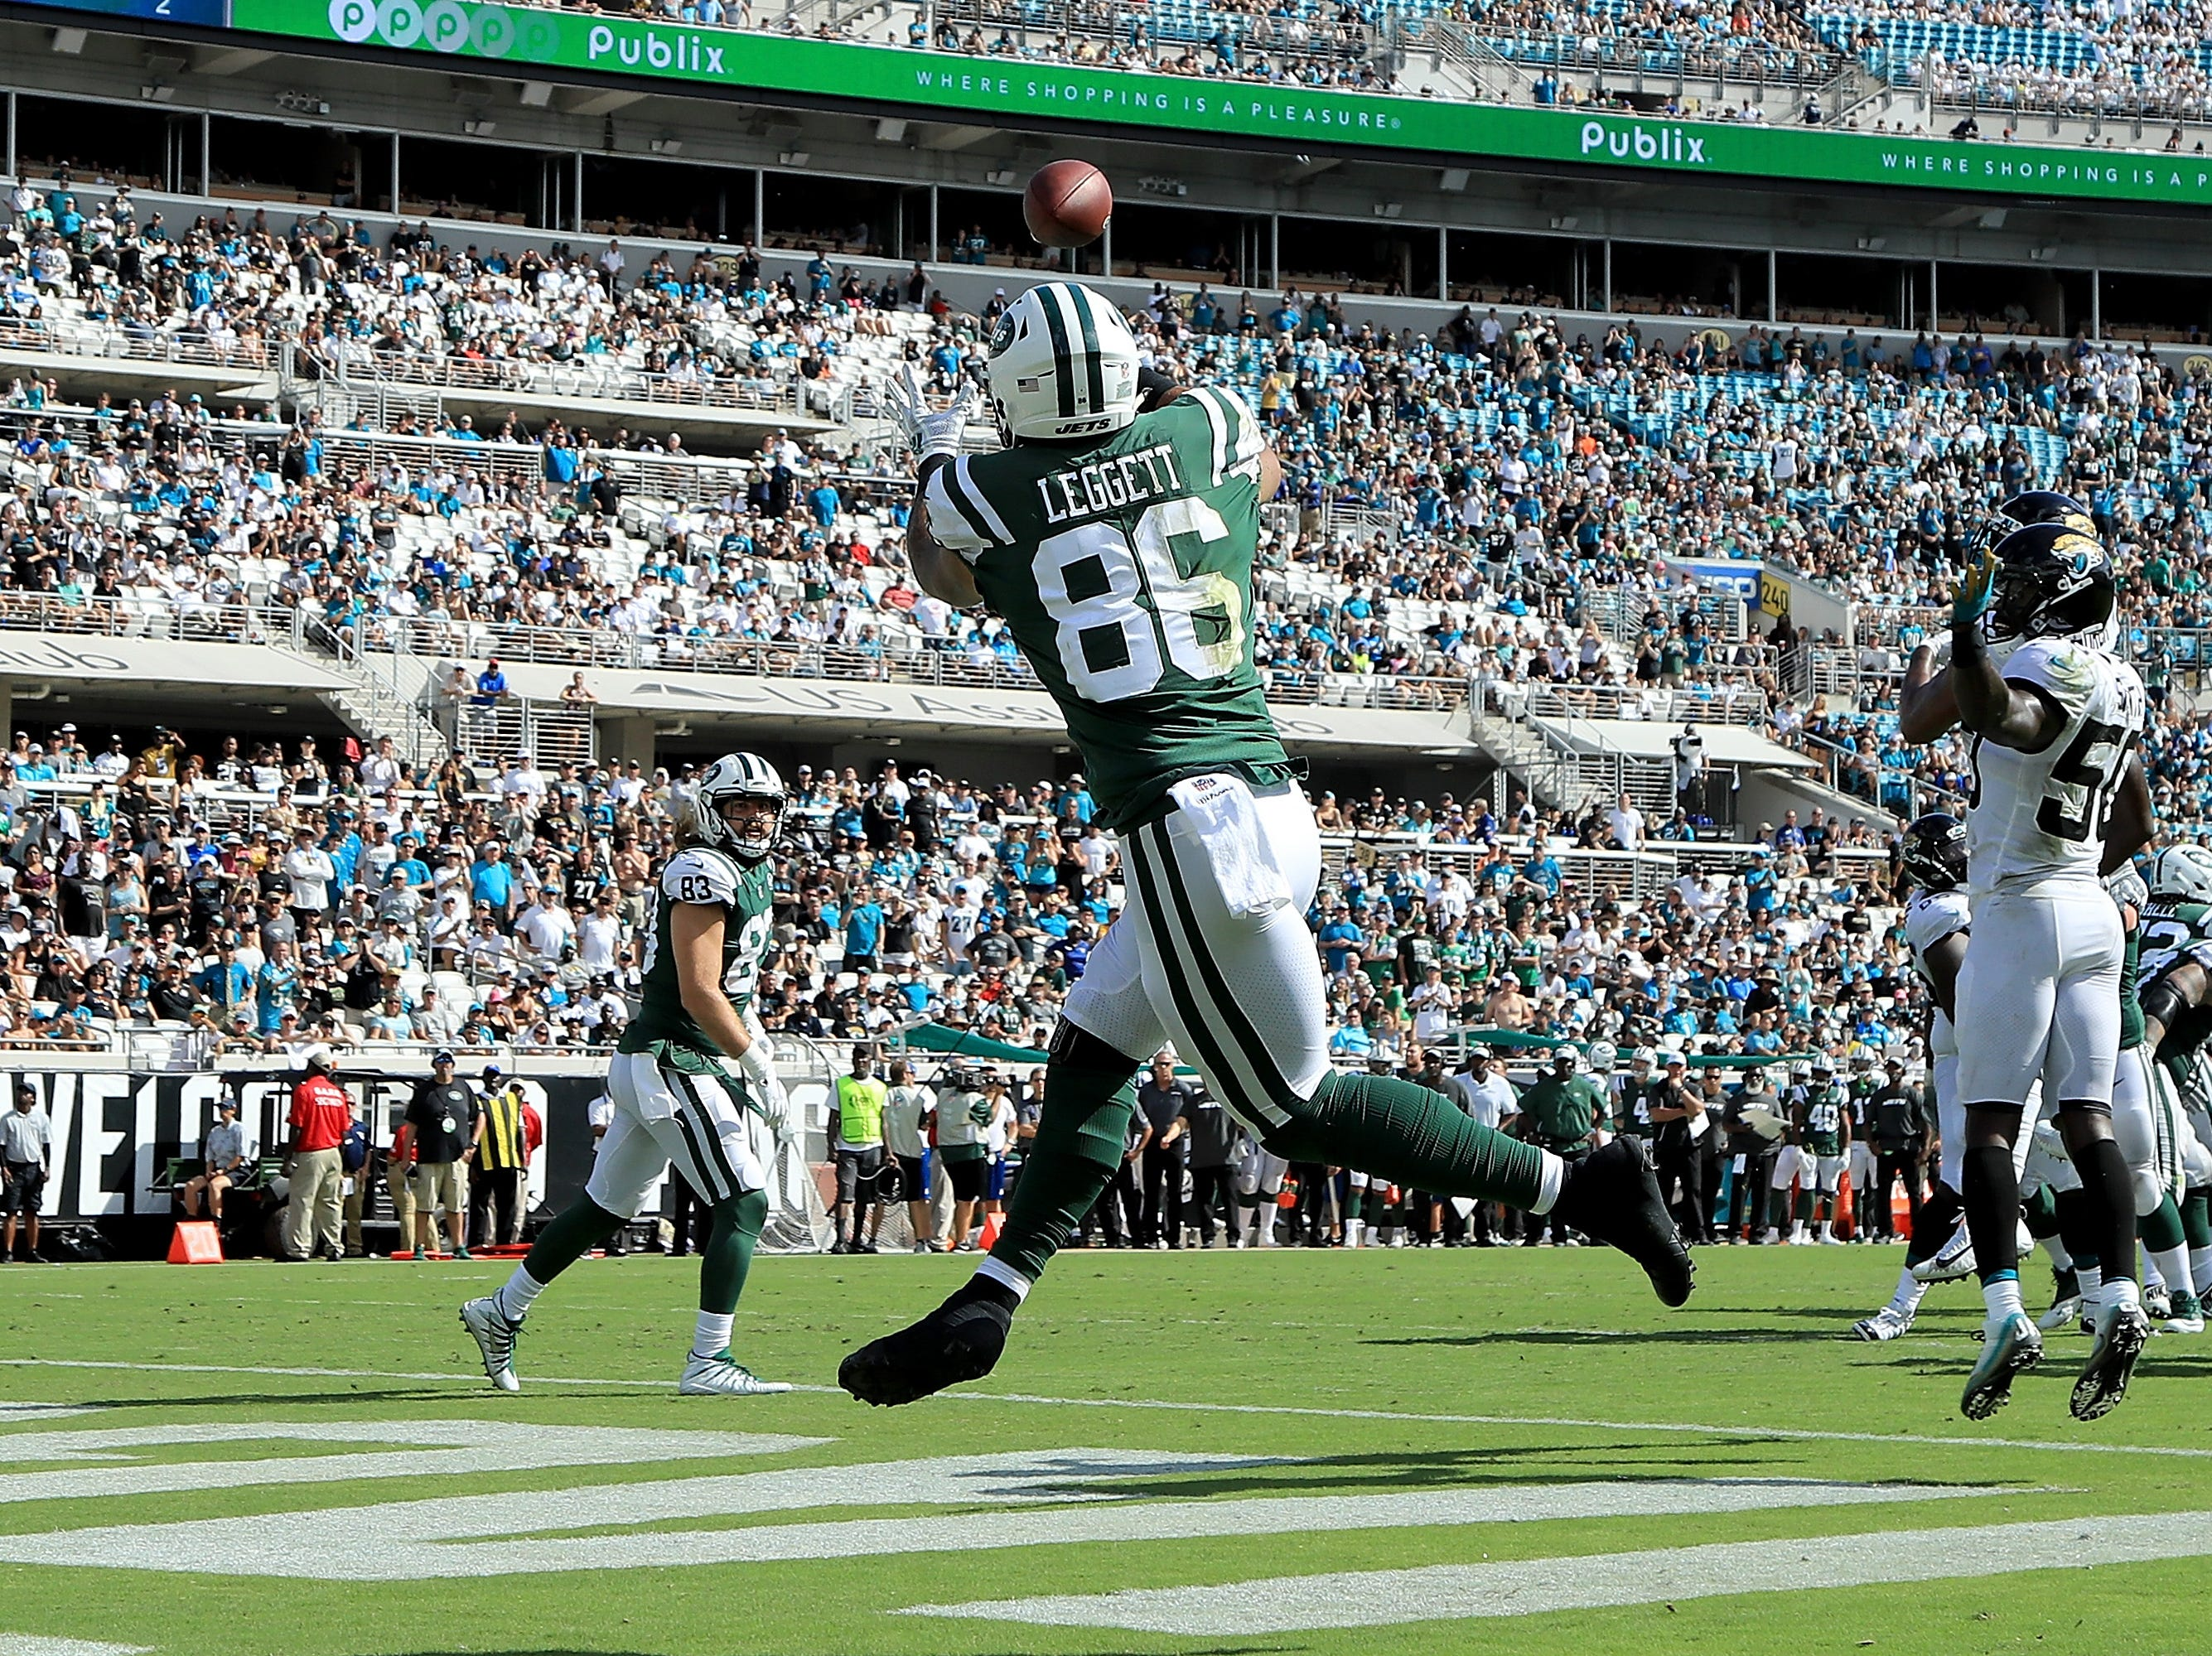 Jordan Leggett #86 of the New York Jets makes a reception for a touchdown during the game against the Jacksonville Jaguars on September 30, 2018 in Jacksonville, Florida.  (Photo by Sam Greenwood/Getty Images)